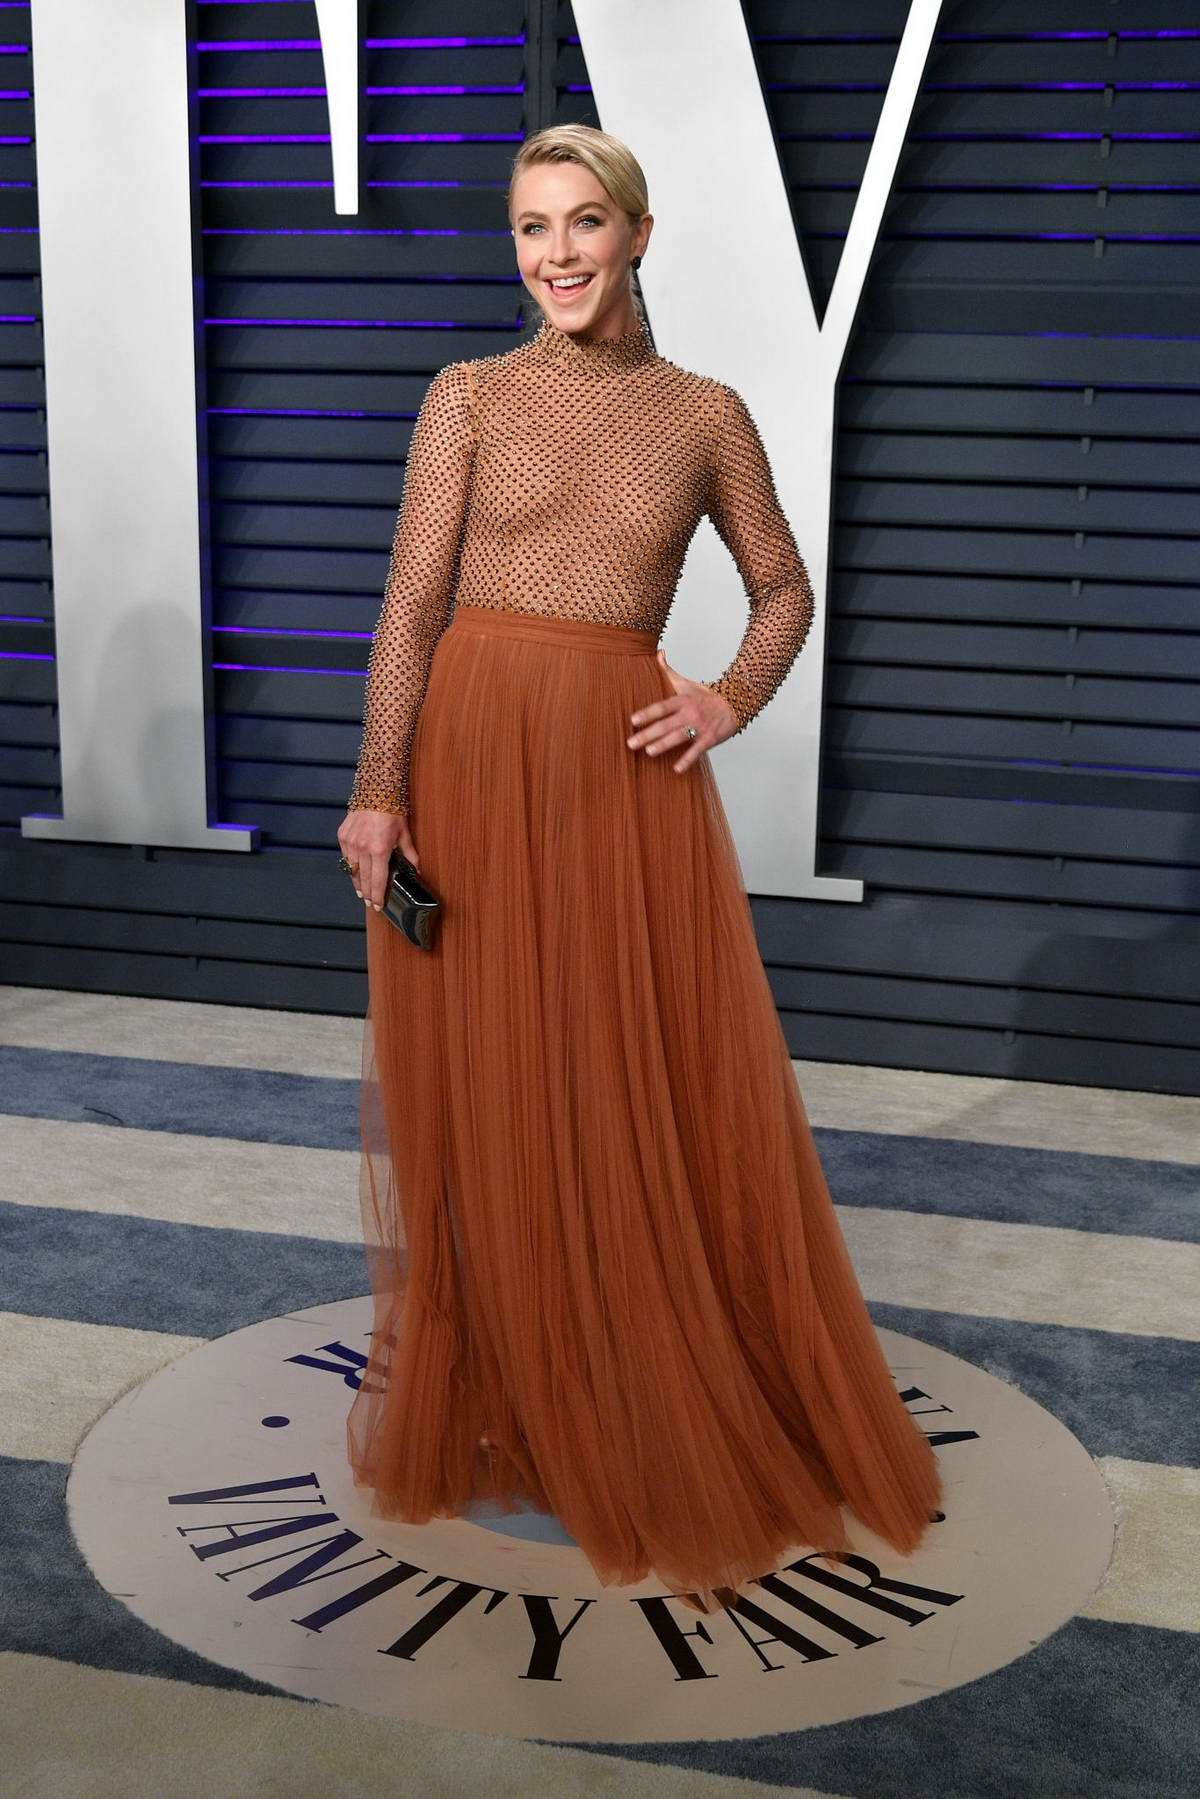 Julianne Hough attends the Vanity Fair Oscar Party at Wallis Annenberg Center for the Performing Arts in Beverly Hills, California